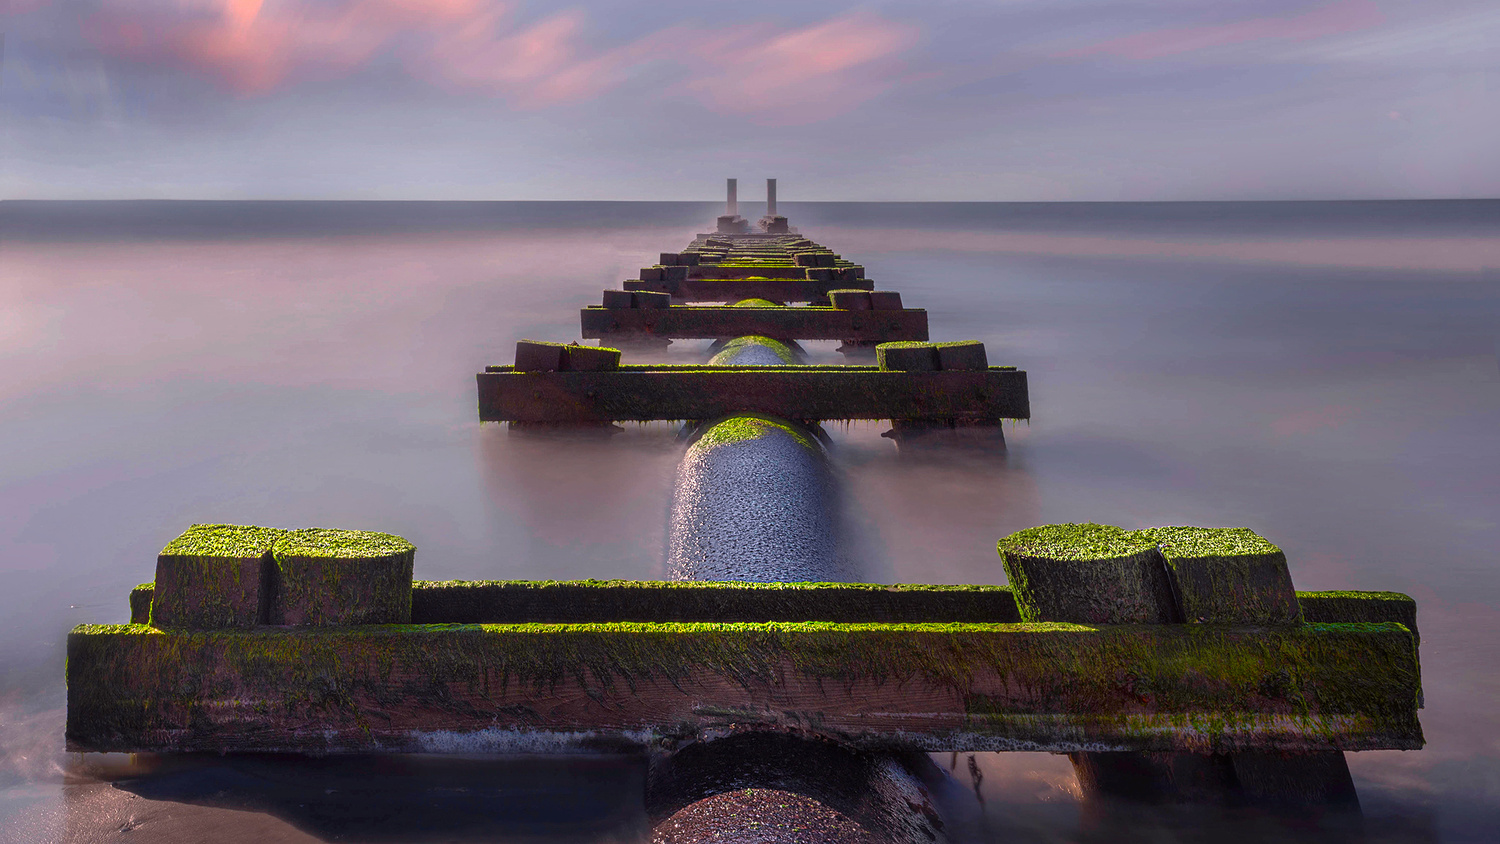 Pipe Dream by Anand Goteti